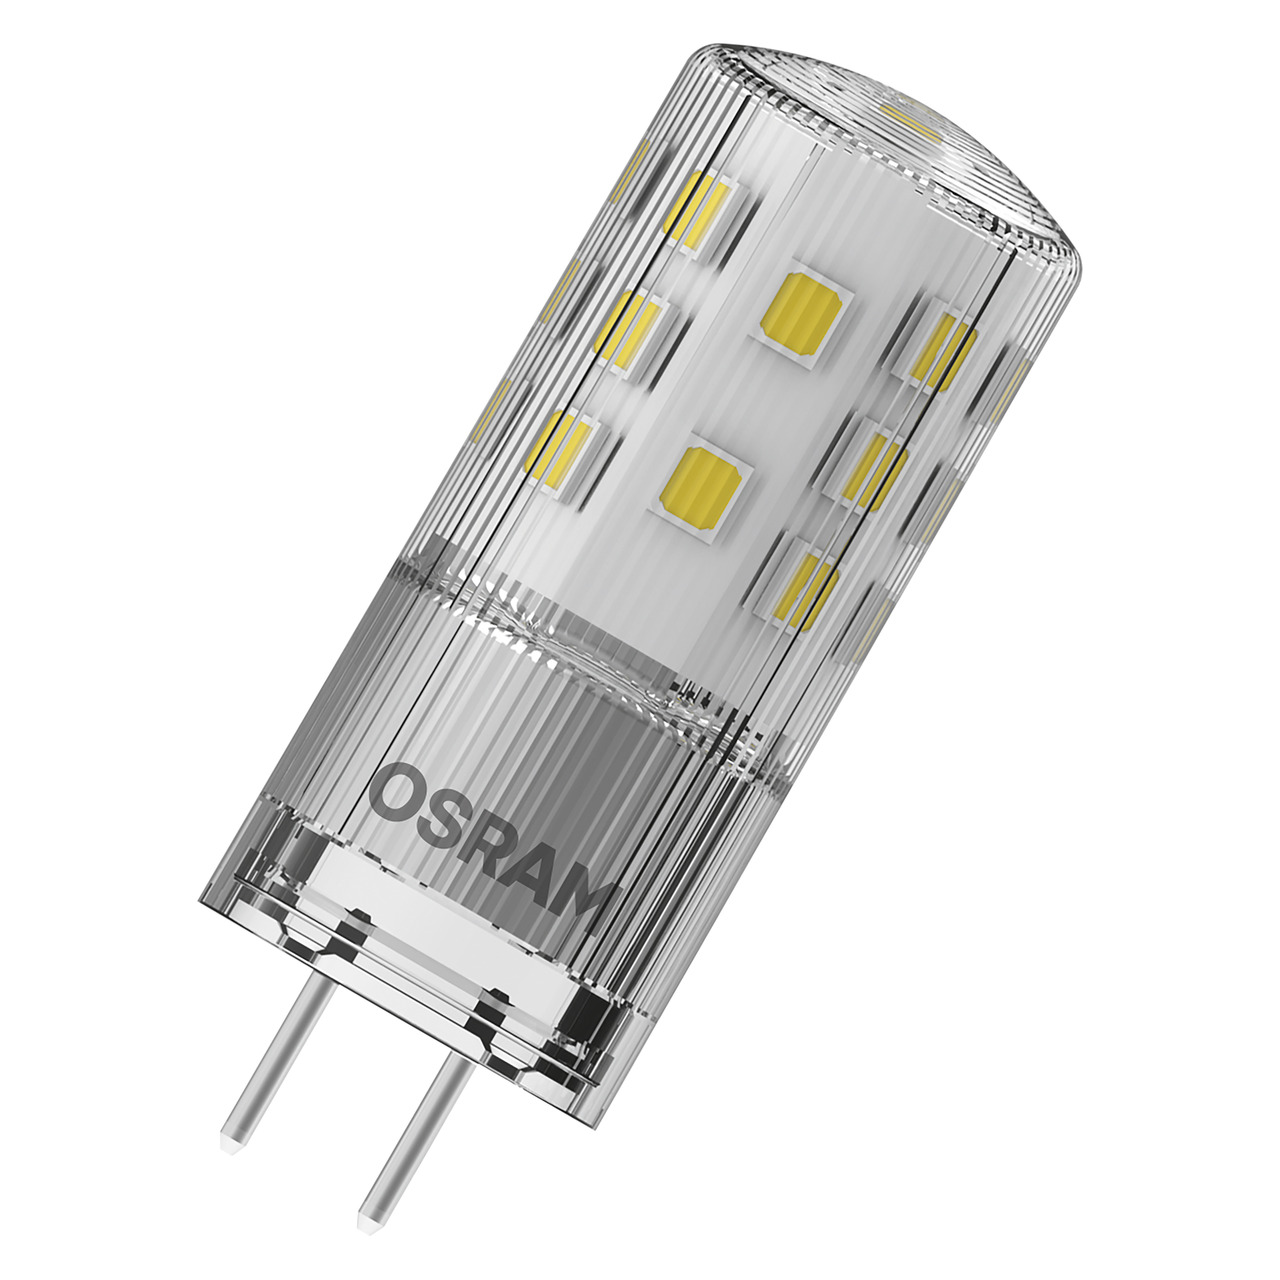 OSRAM 3-3-W-LED-Lampe T18- GY6-35- 400 lm- warmweiss- 320- 12 V